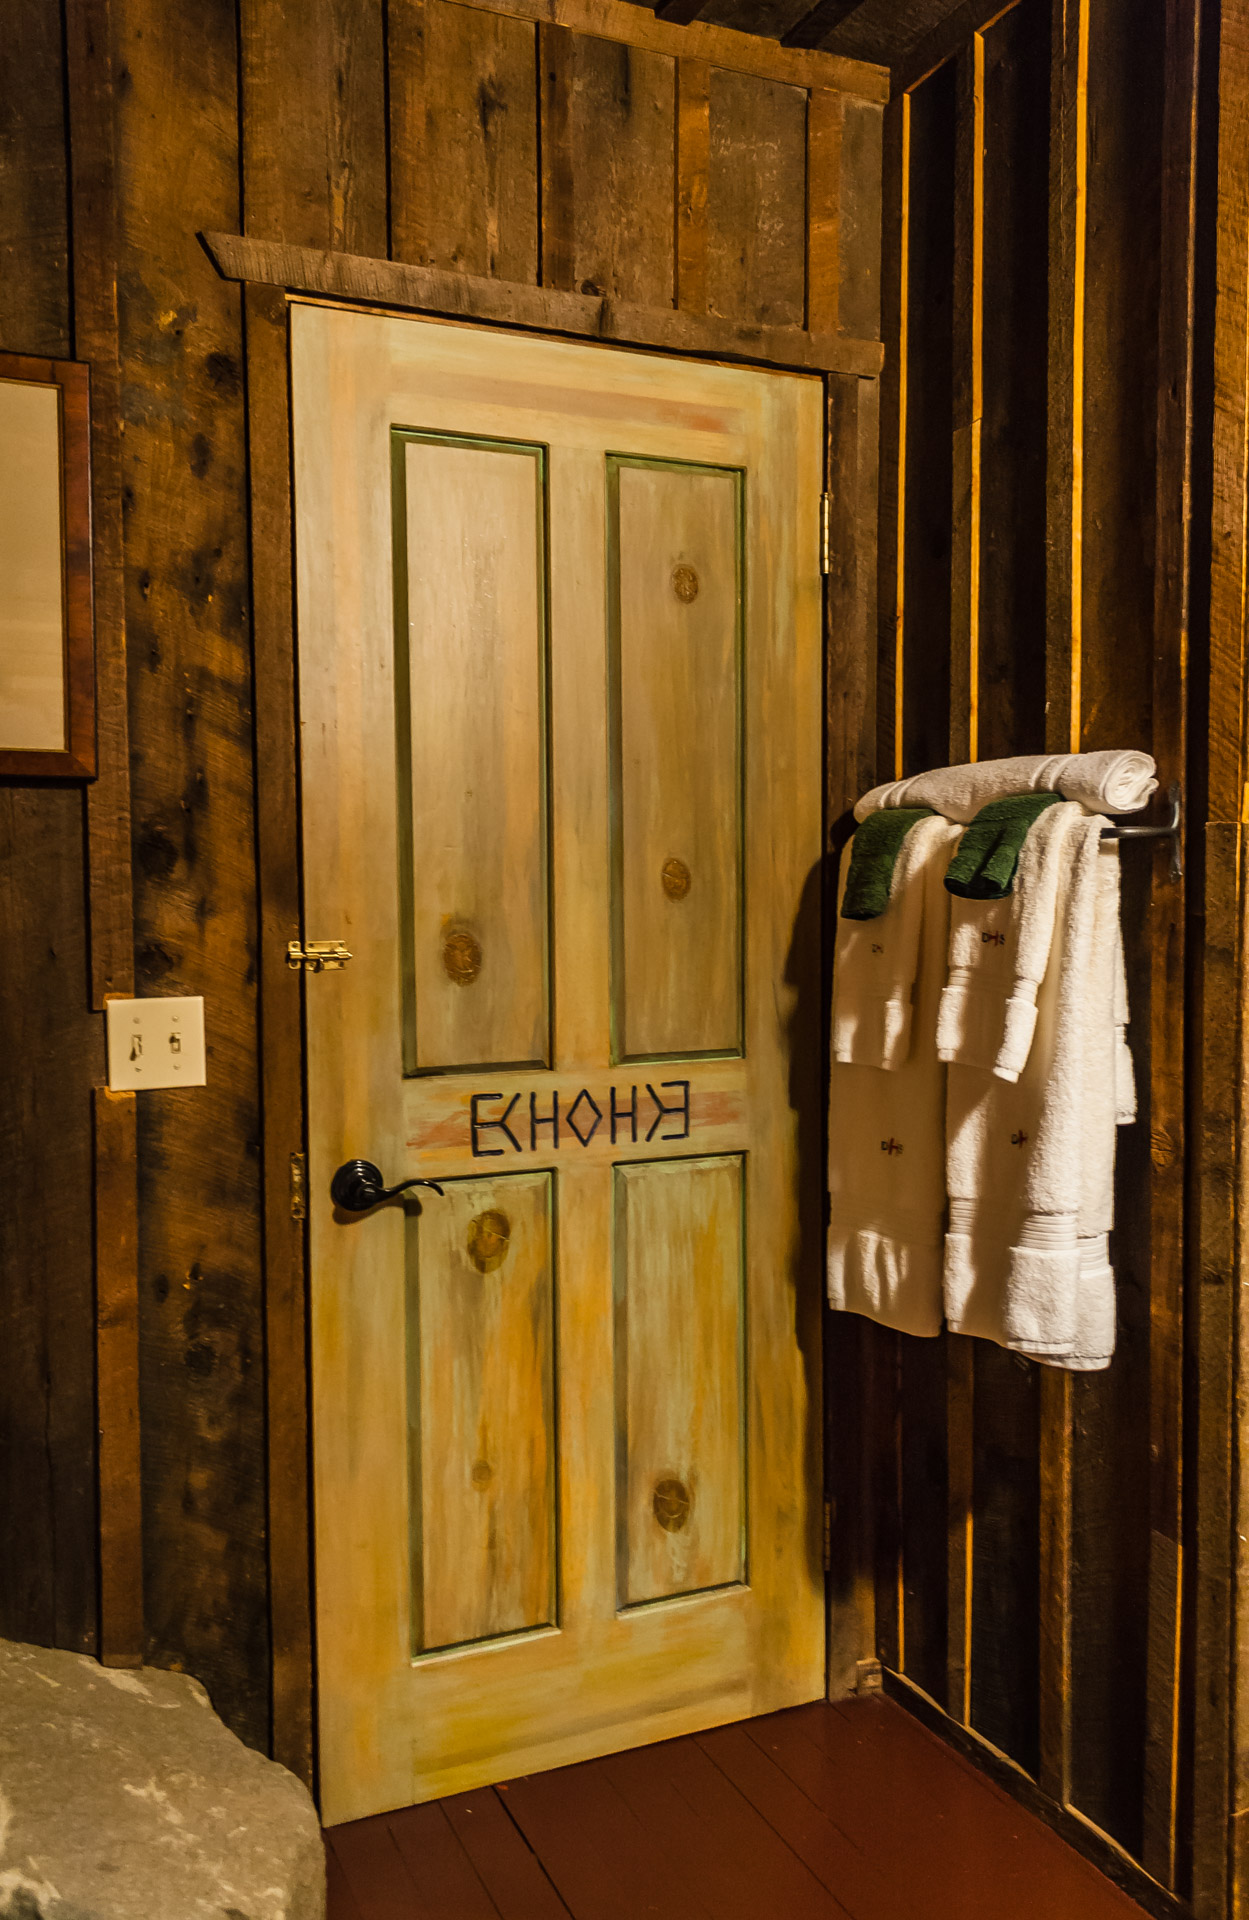 Dunton Hot Springs (echo door)